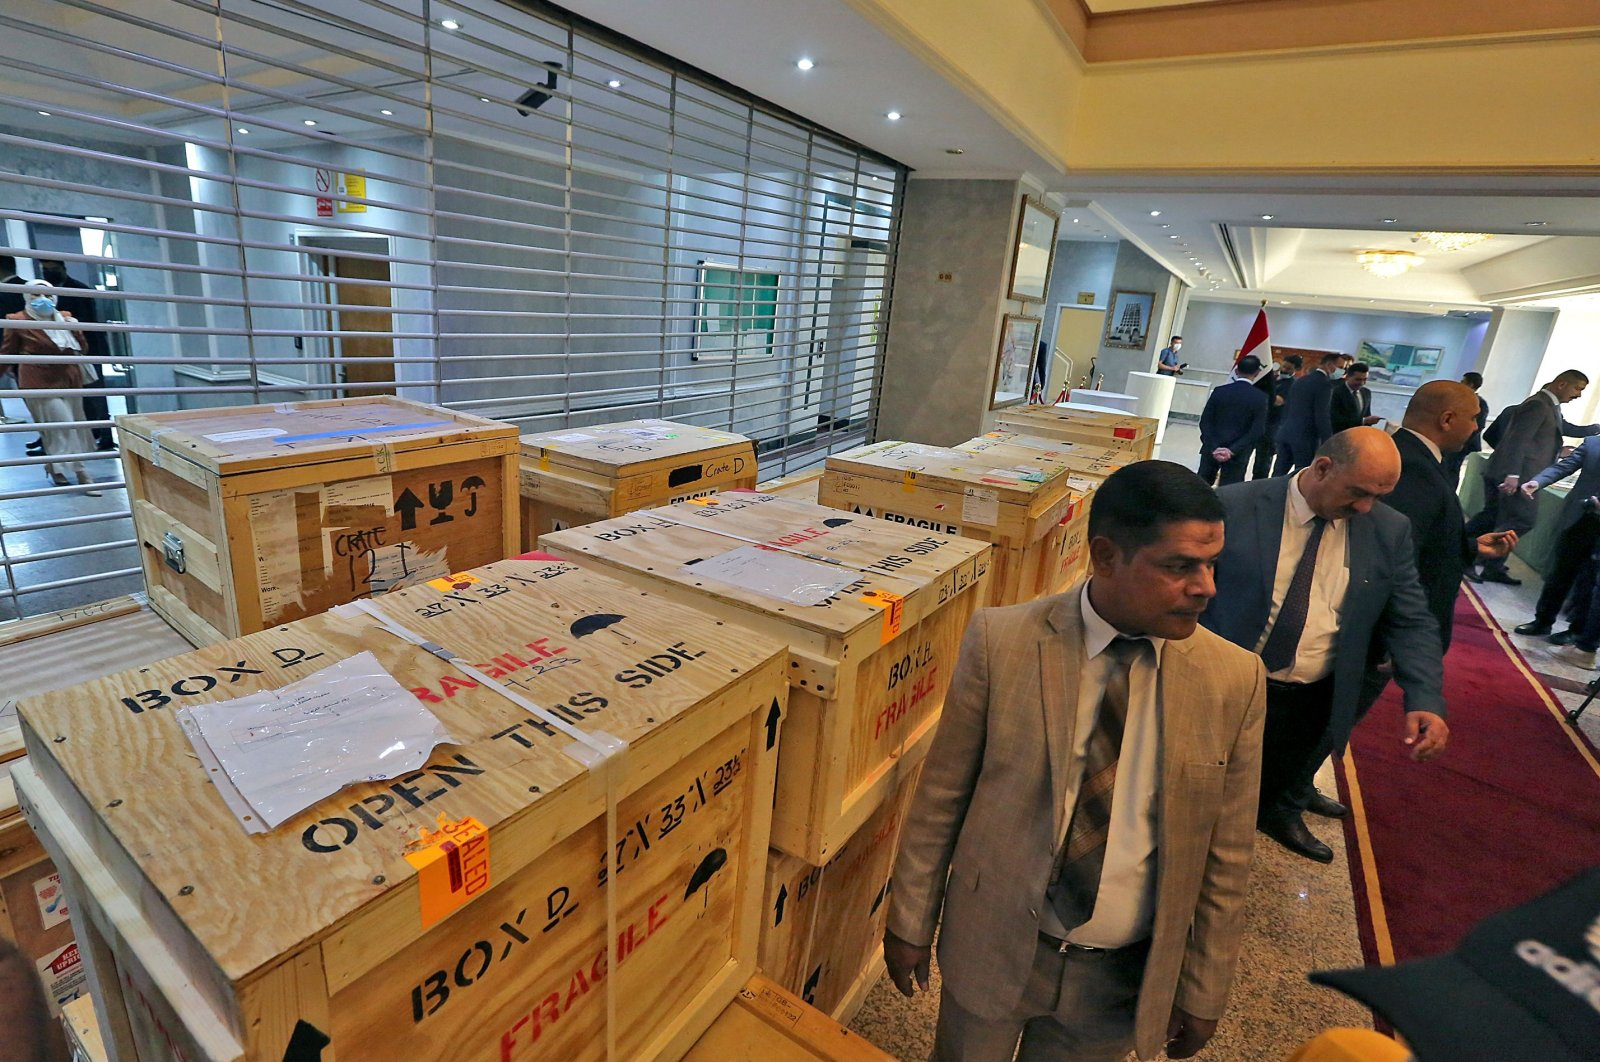 Staff members at Iraq's Ministry of Foreign Affairs work around crates of looted Iraqi antiquities returned by the United States, ahead of a handover ceremony at the ministry in the capital Baghdad, on Aug. 3, 2021. (AFP Photo)